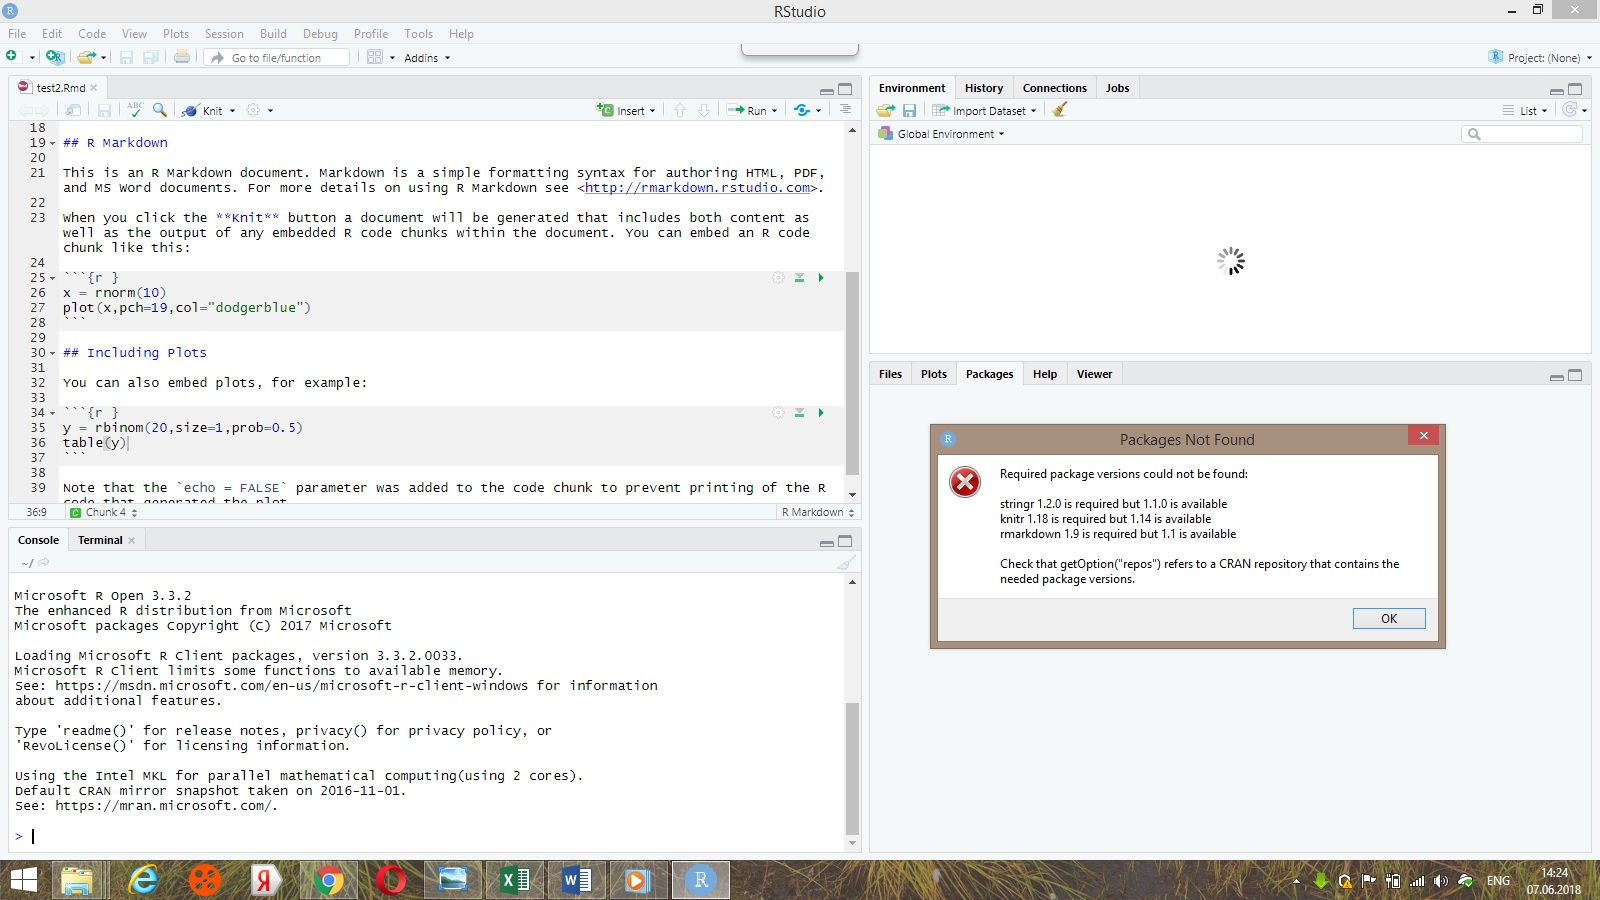 Issue with installation and updating packages - RStudio IDE